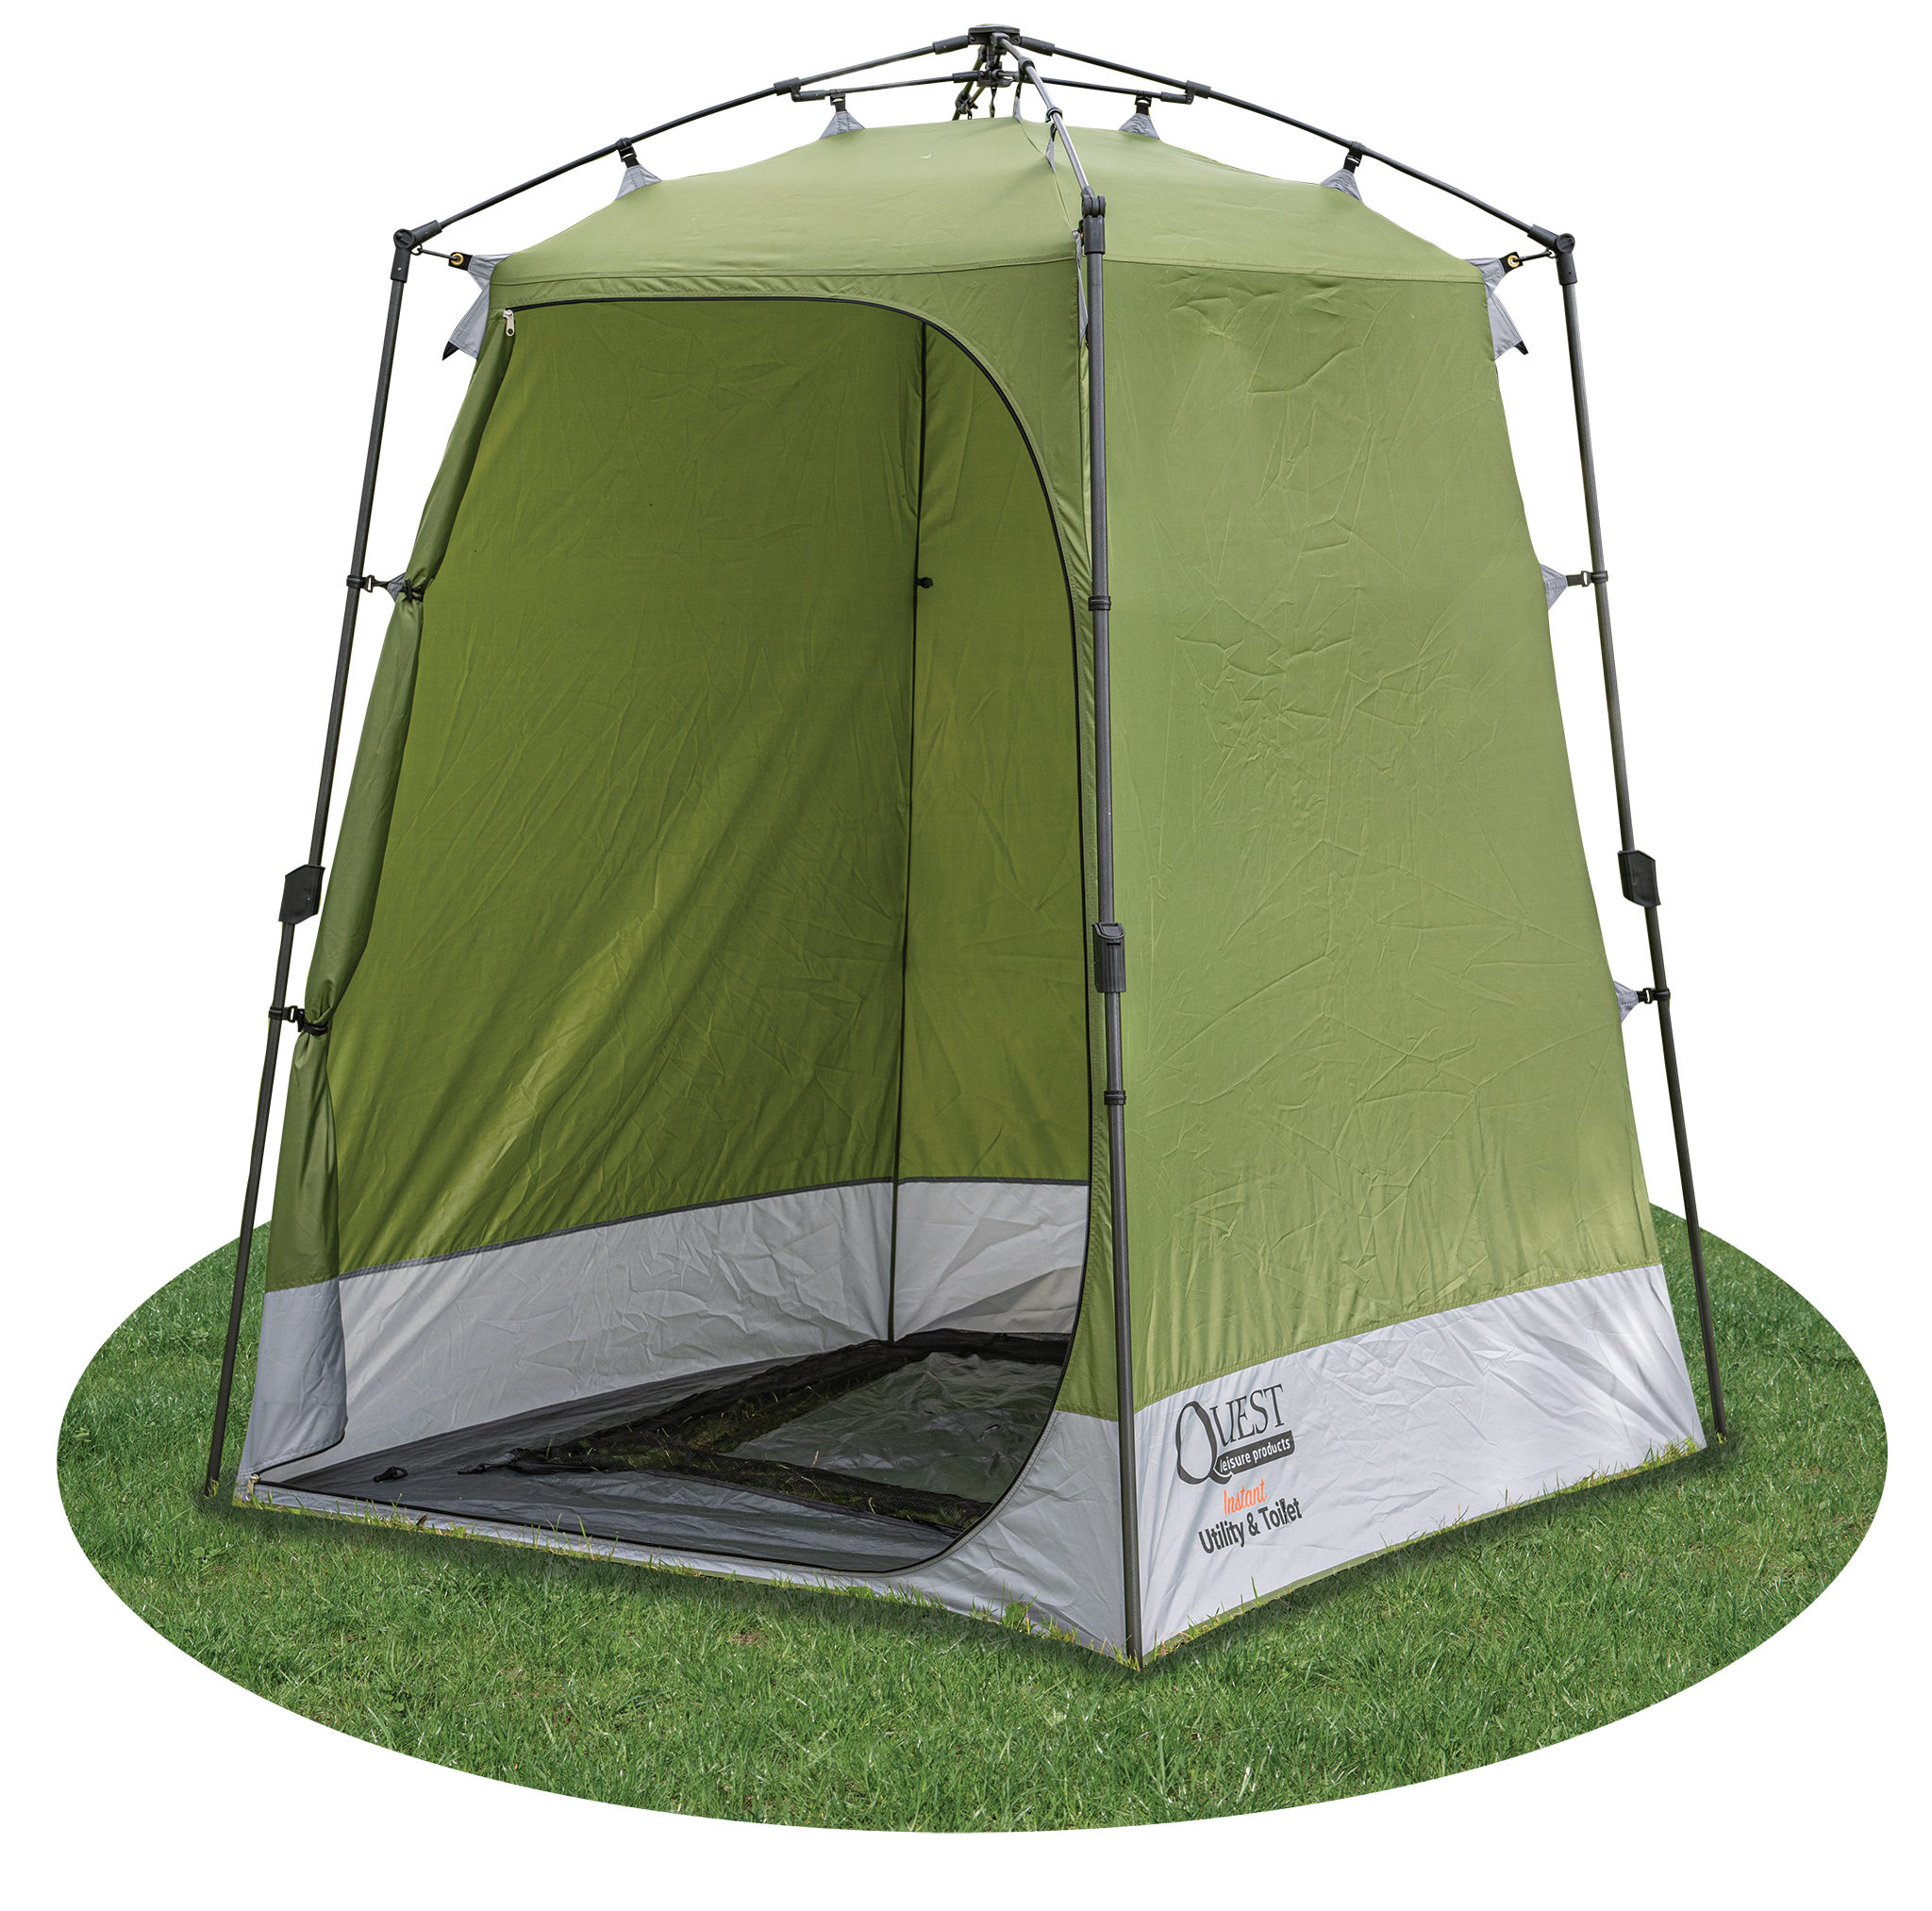 Quest Instant Utility and Storage Tent